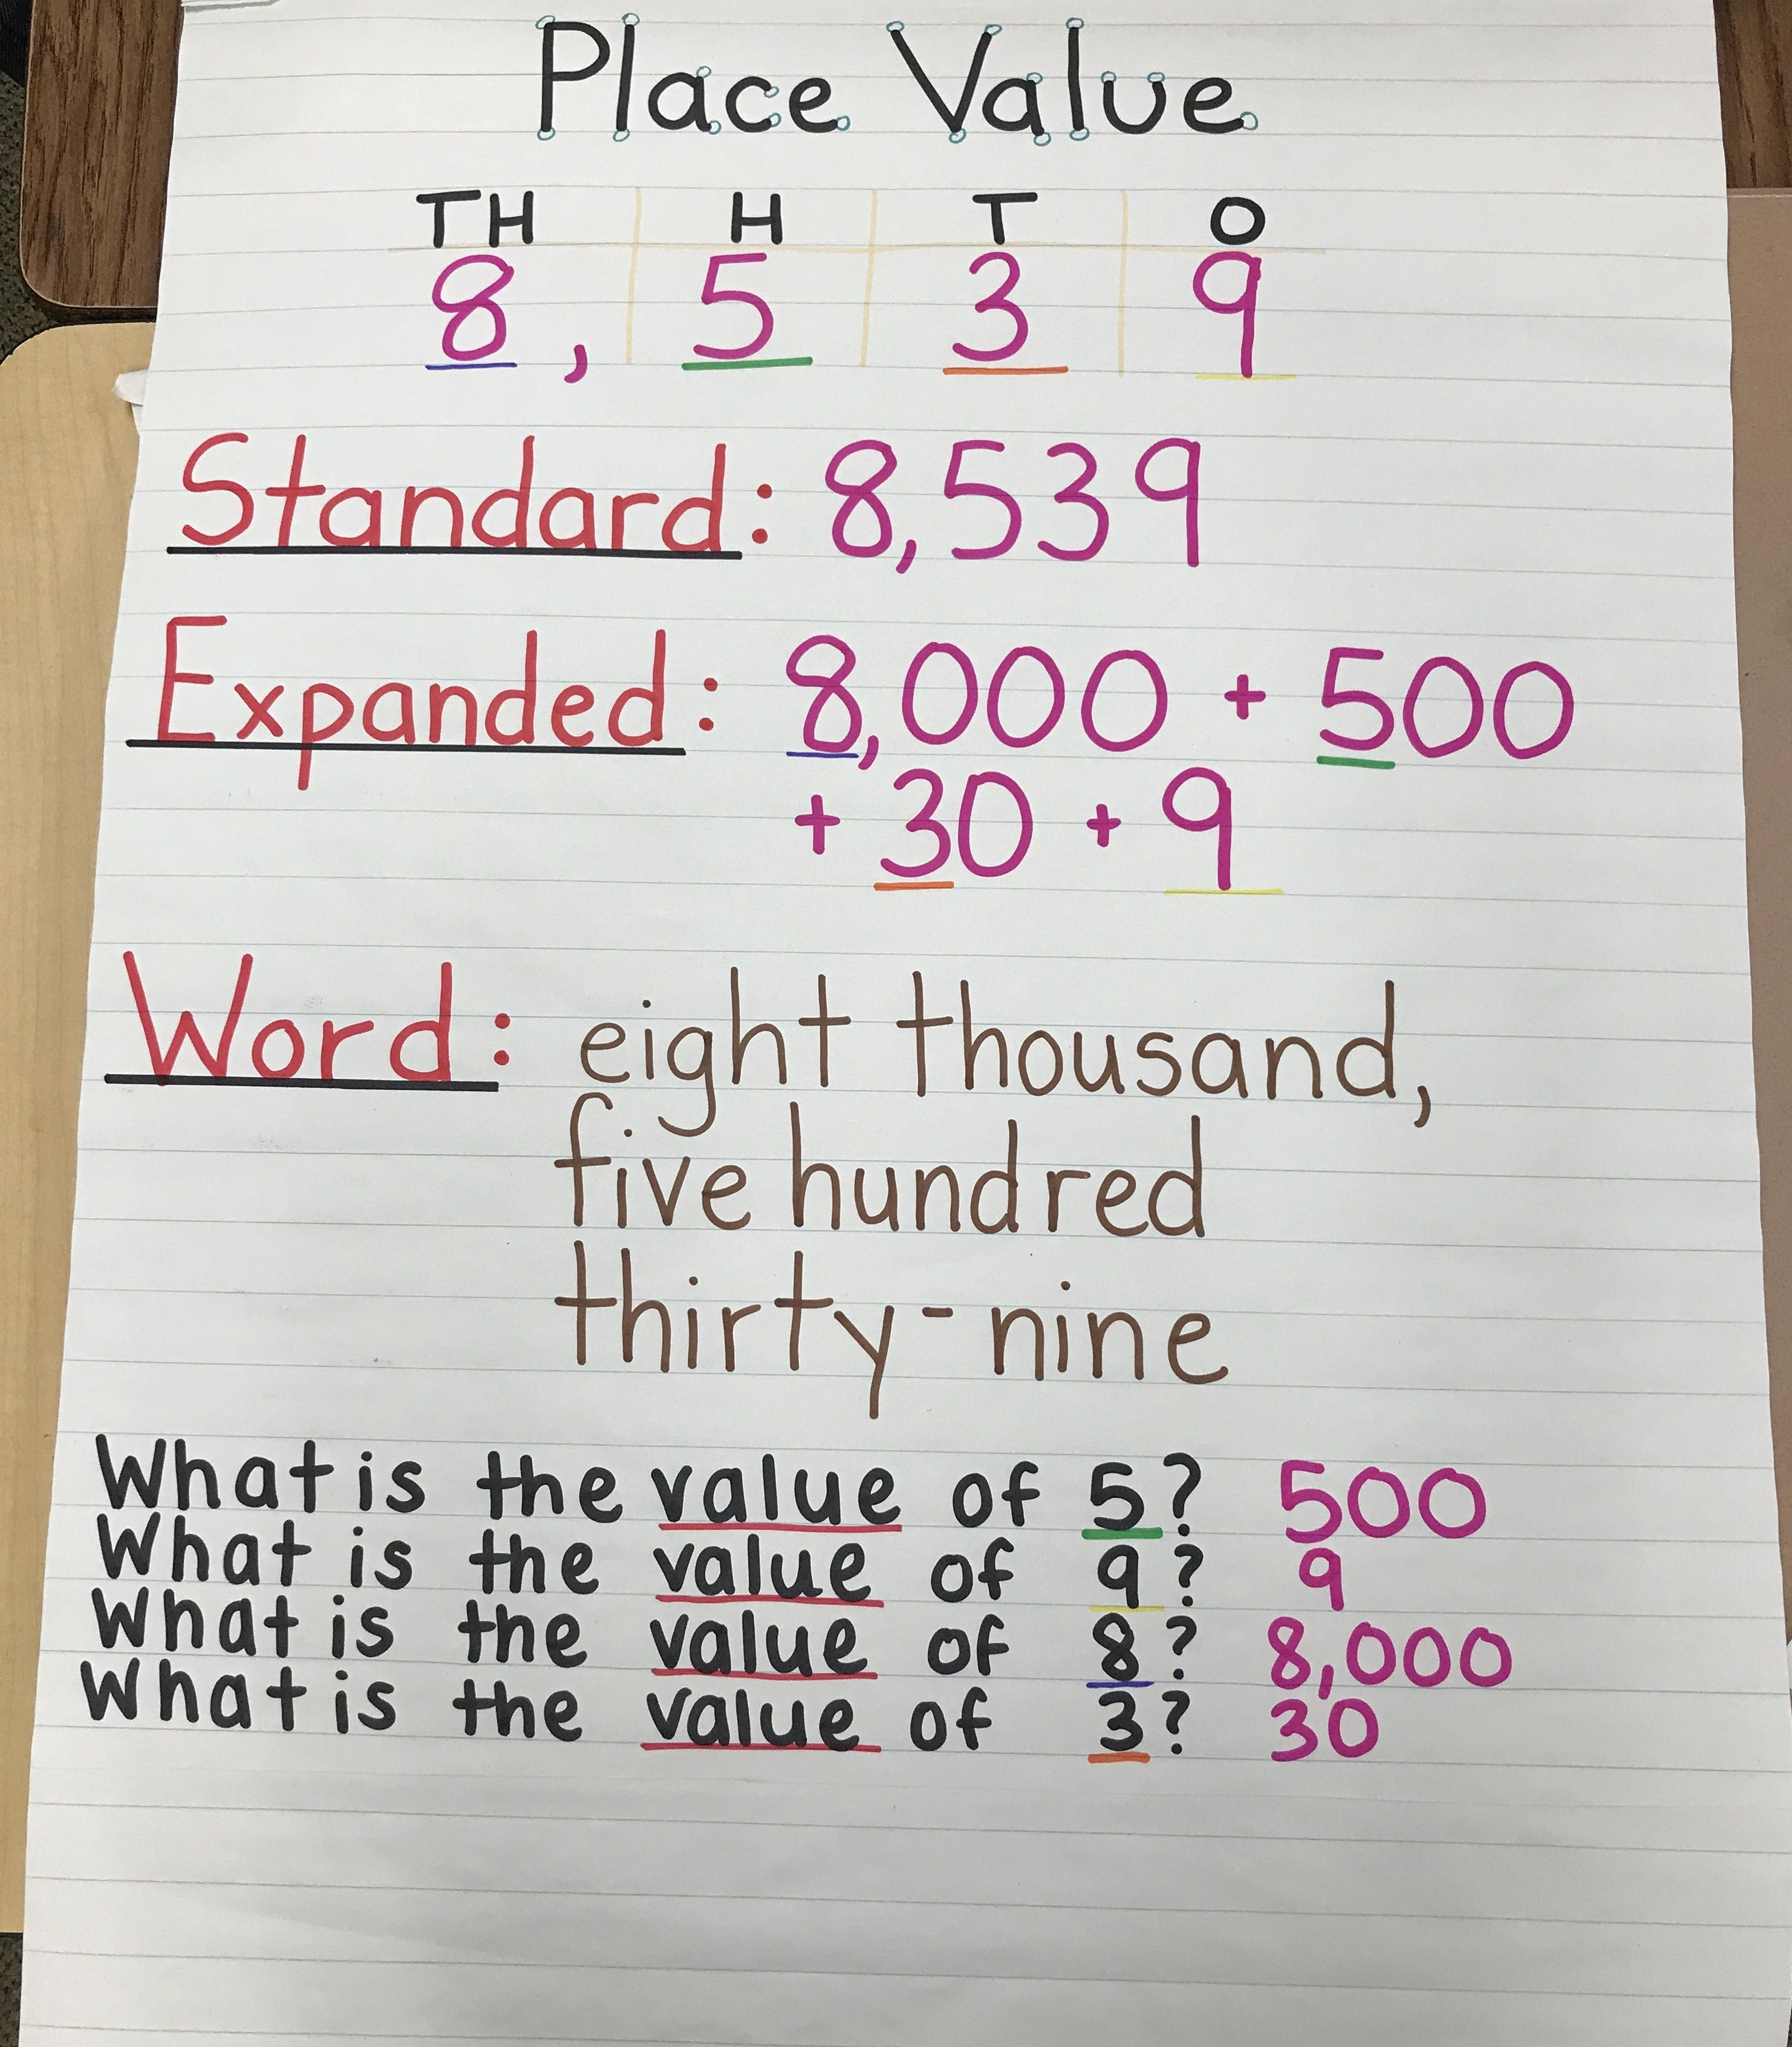 medium resolution of Place Value / Expanded